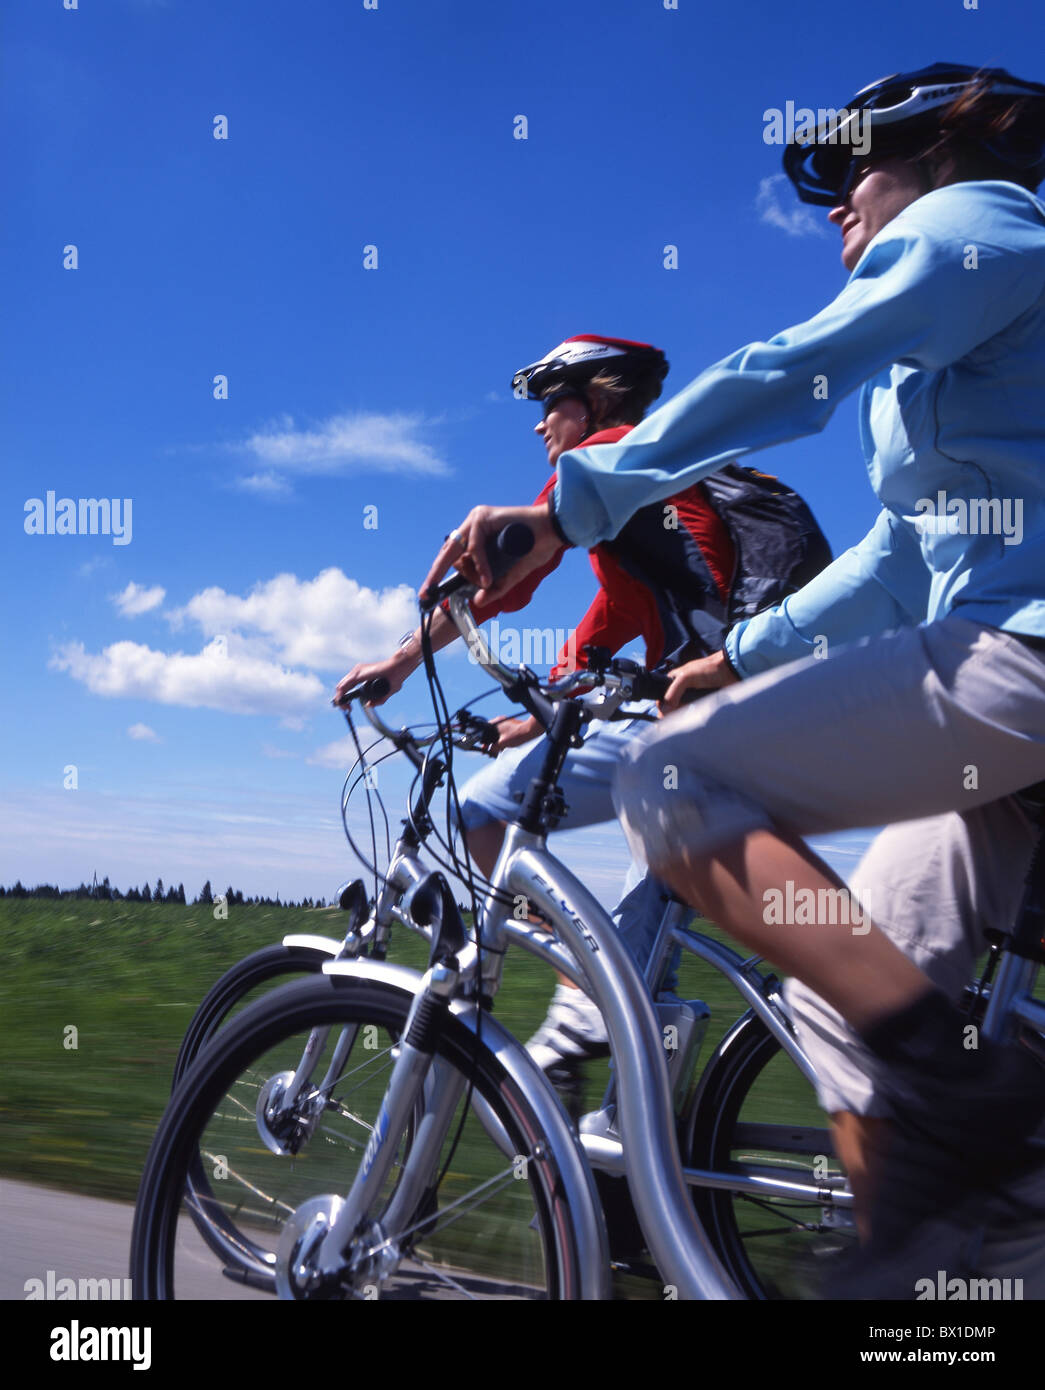 bicycle bike electric Flyer group scenery landscape spare sports summer Switzerland Europe time tour b - Stock Image